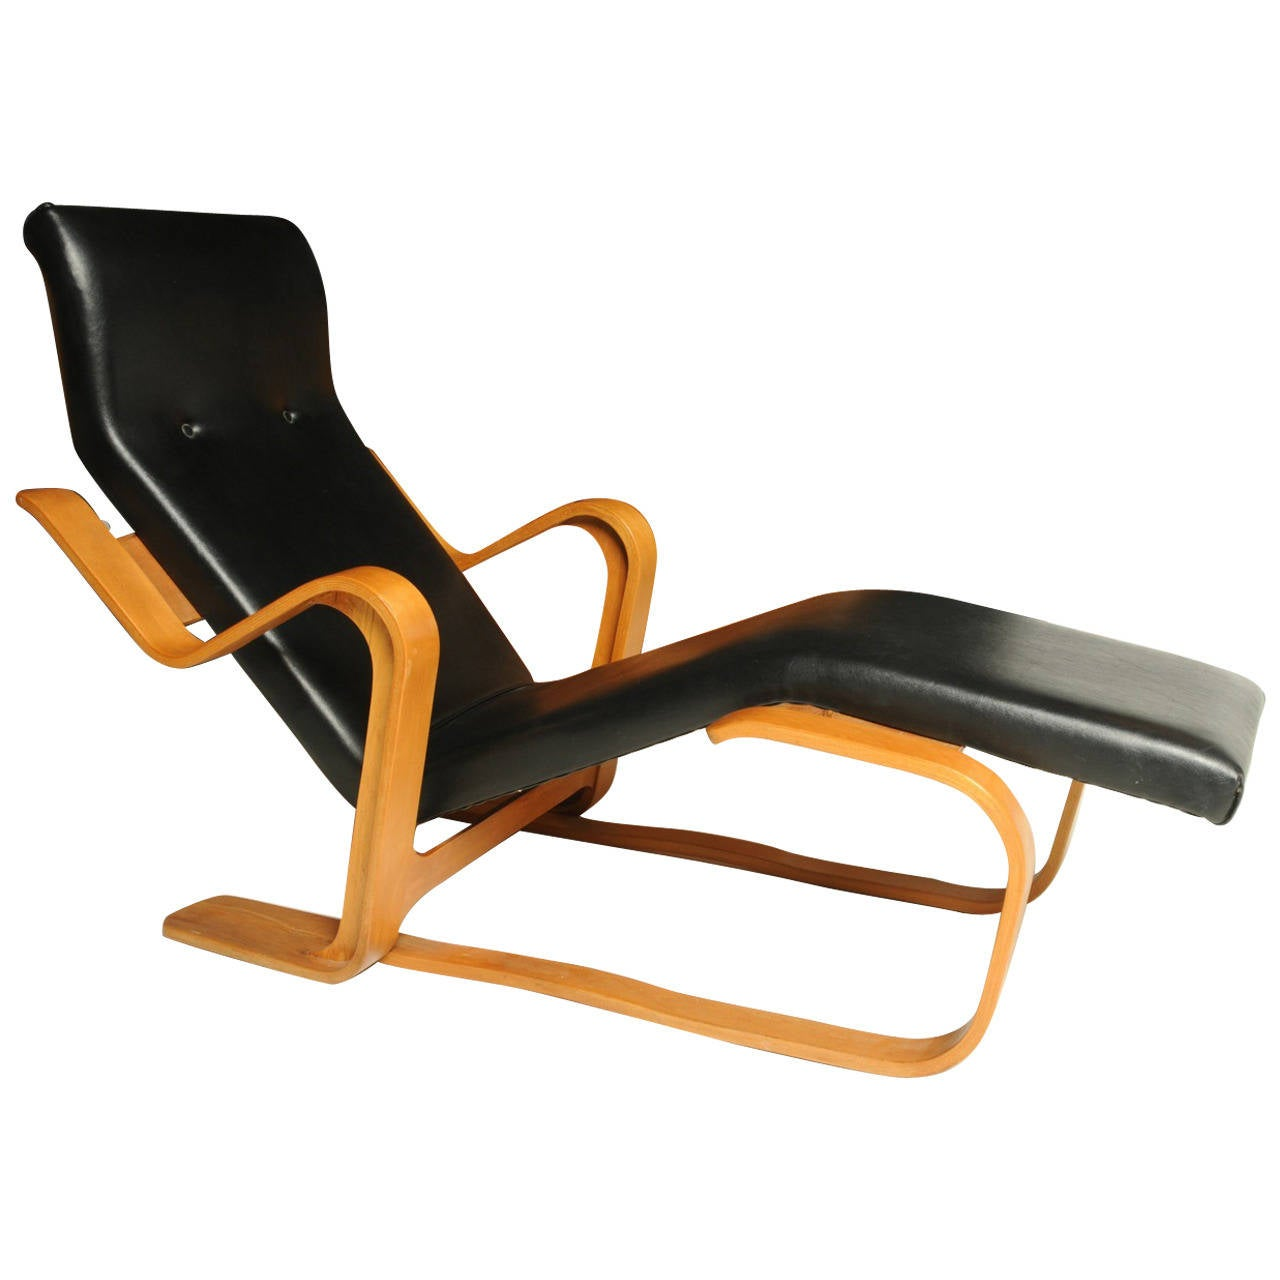 Early marcel breuer long chaise for sale at 1stdibs for Breuer chaise lounge